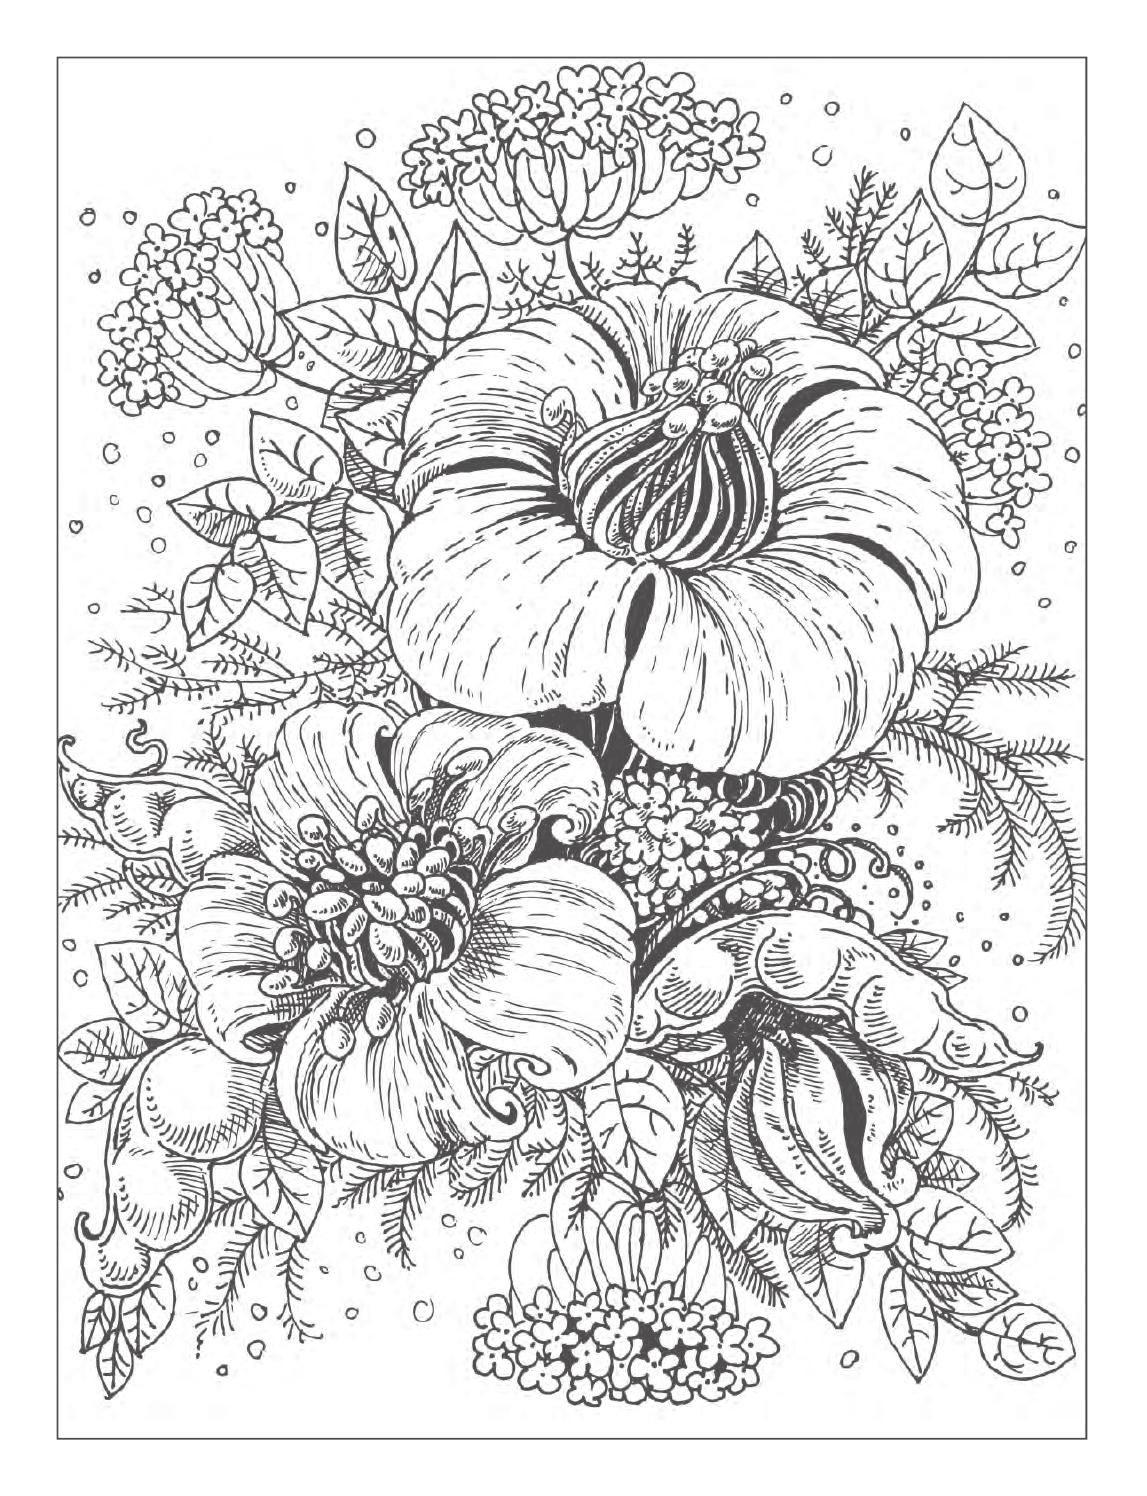 Beautiful Flowers Detailed Floral Designs Coloring Book - preview in ...